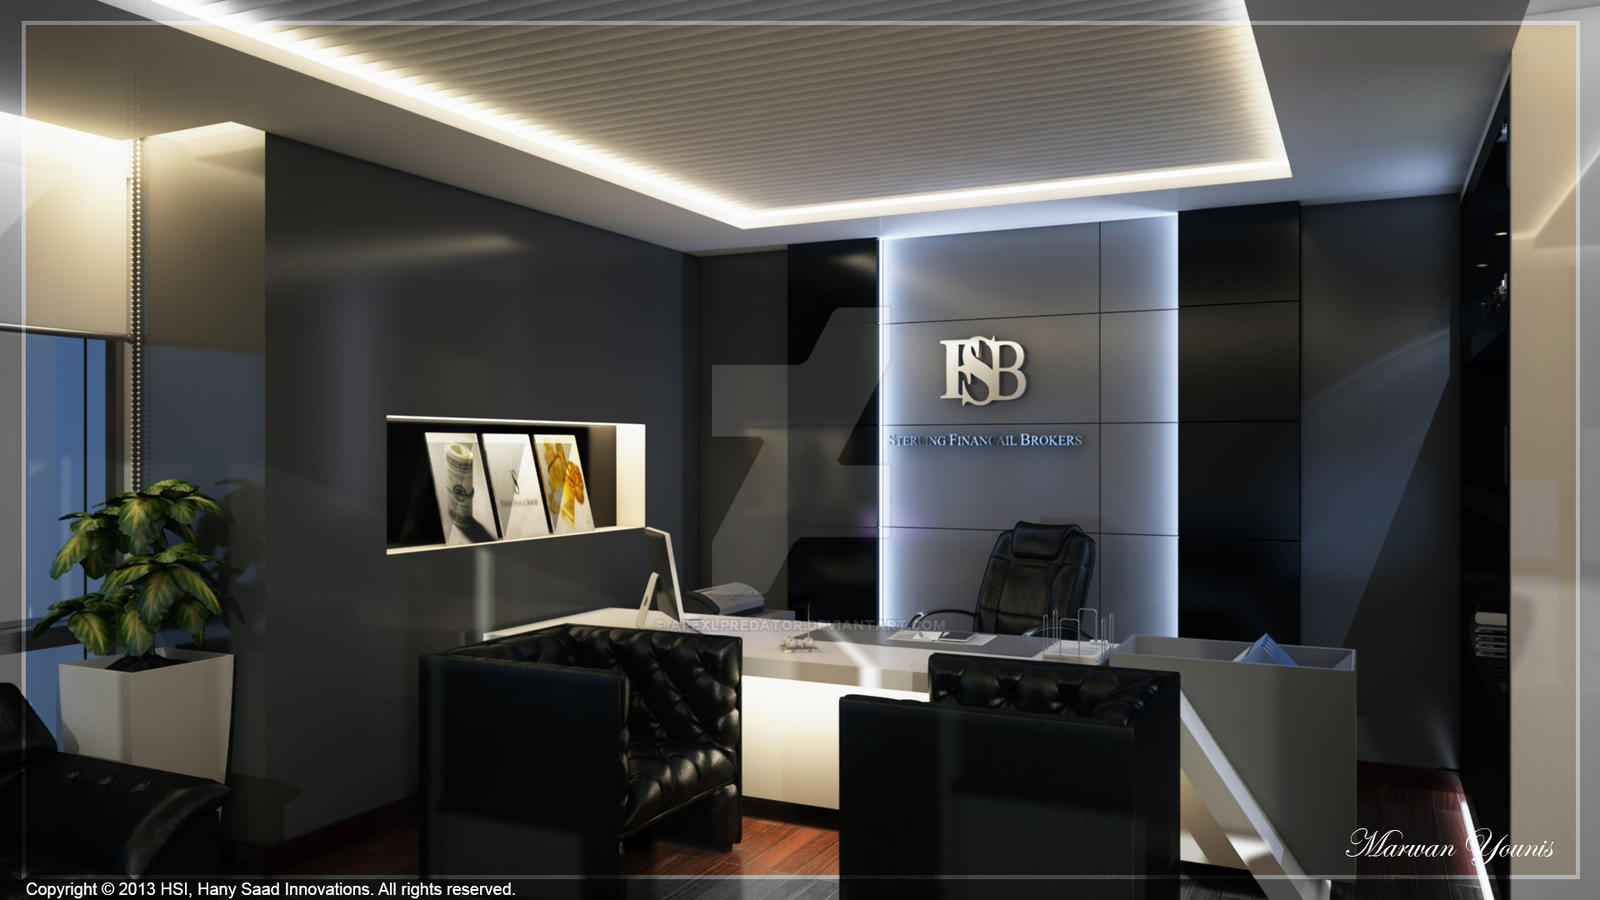 Ceo office 03 by apexlpredator on deviantart for Best executive office design